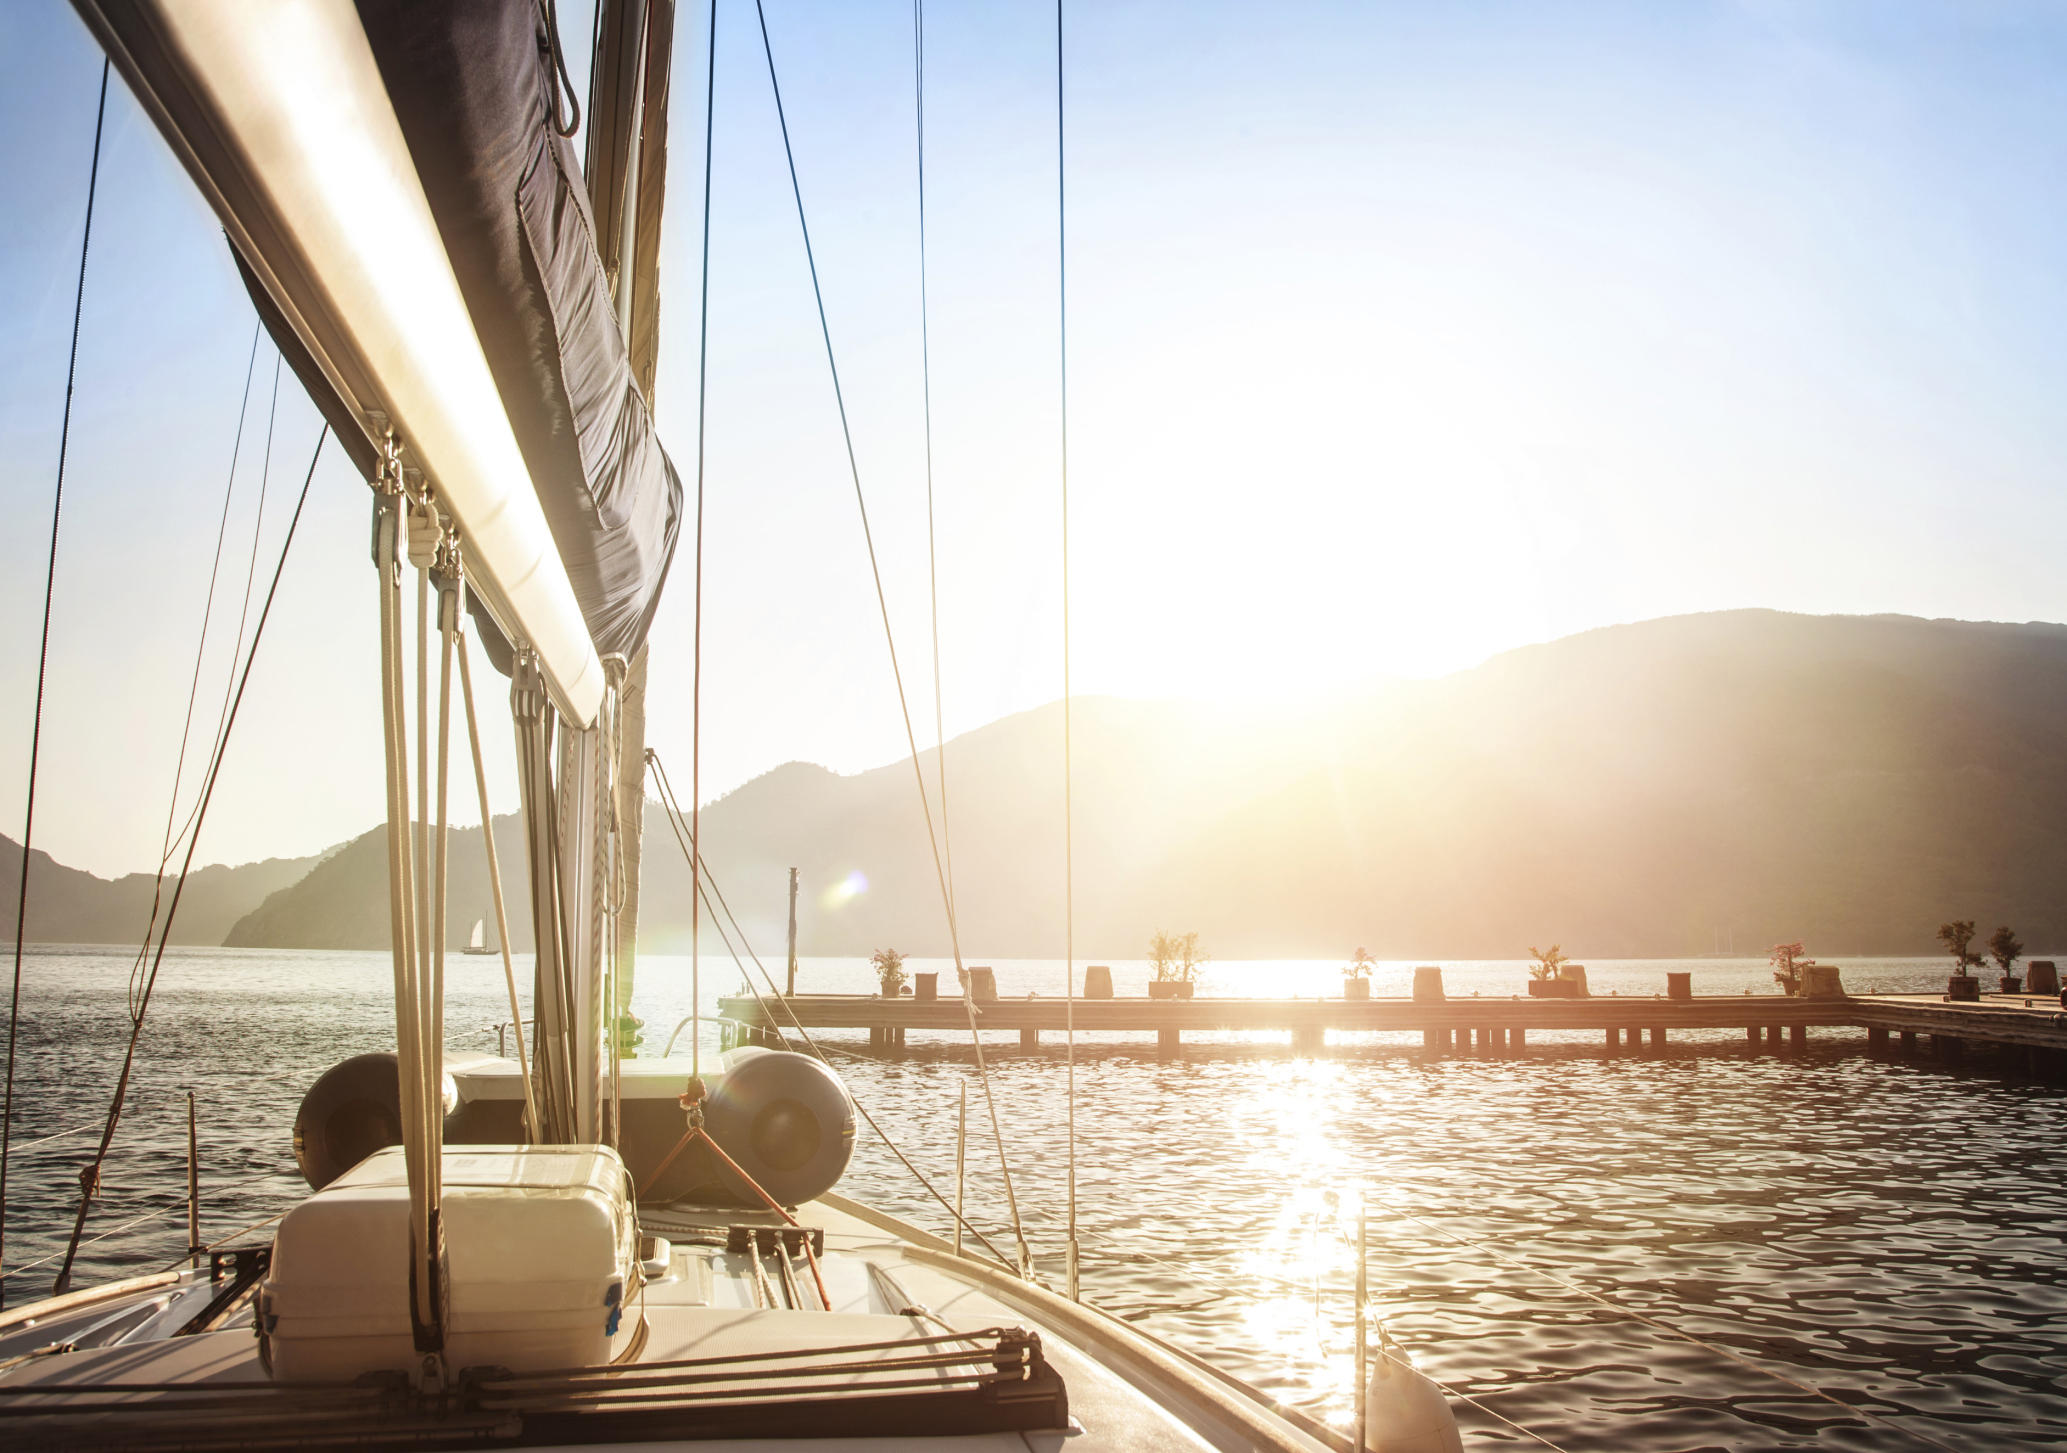 The 'Airbnb of Boats' Lets You Charter Your Own Boat for